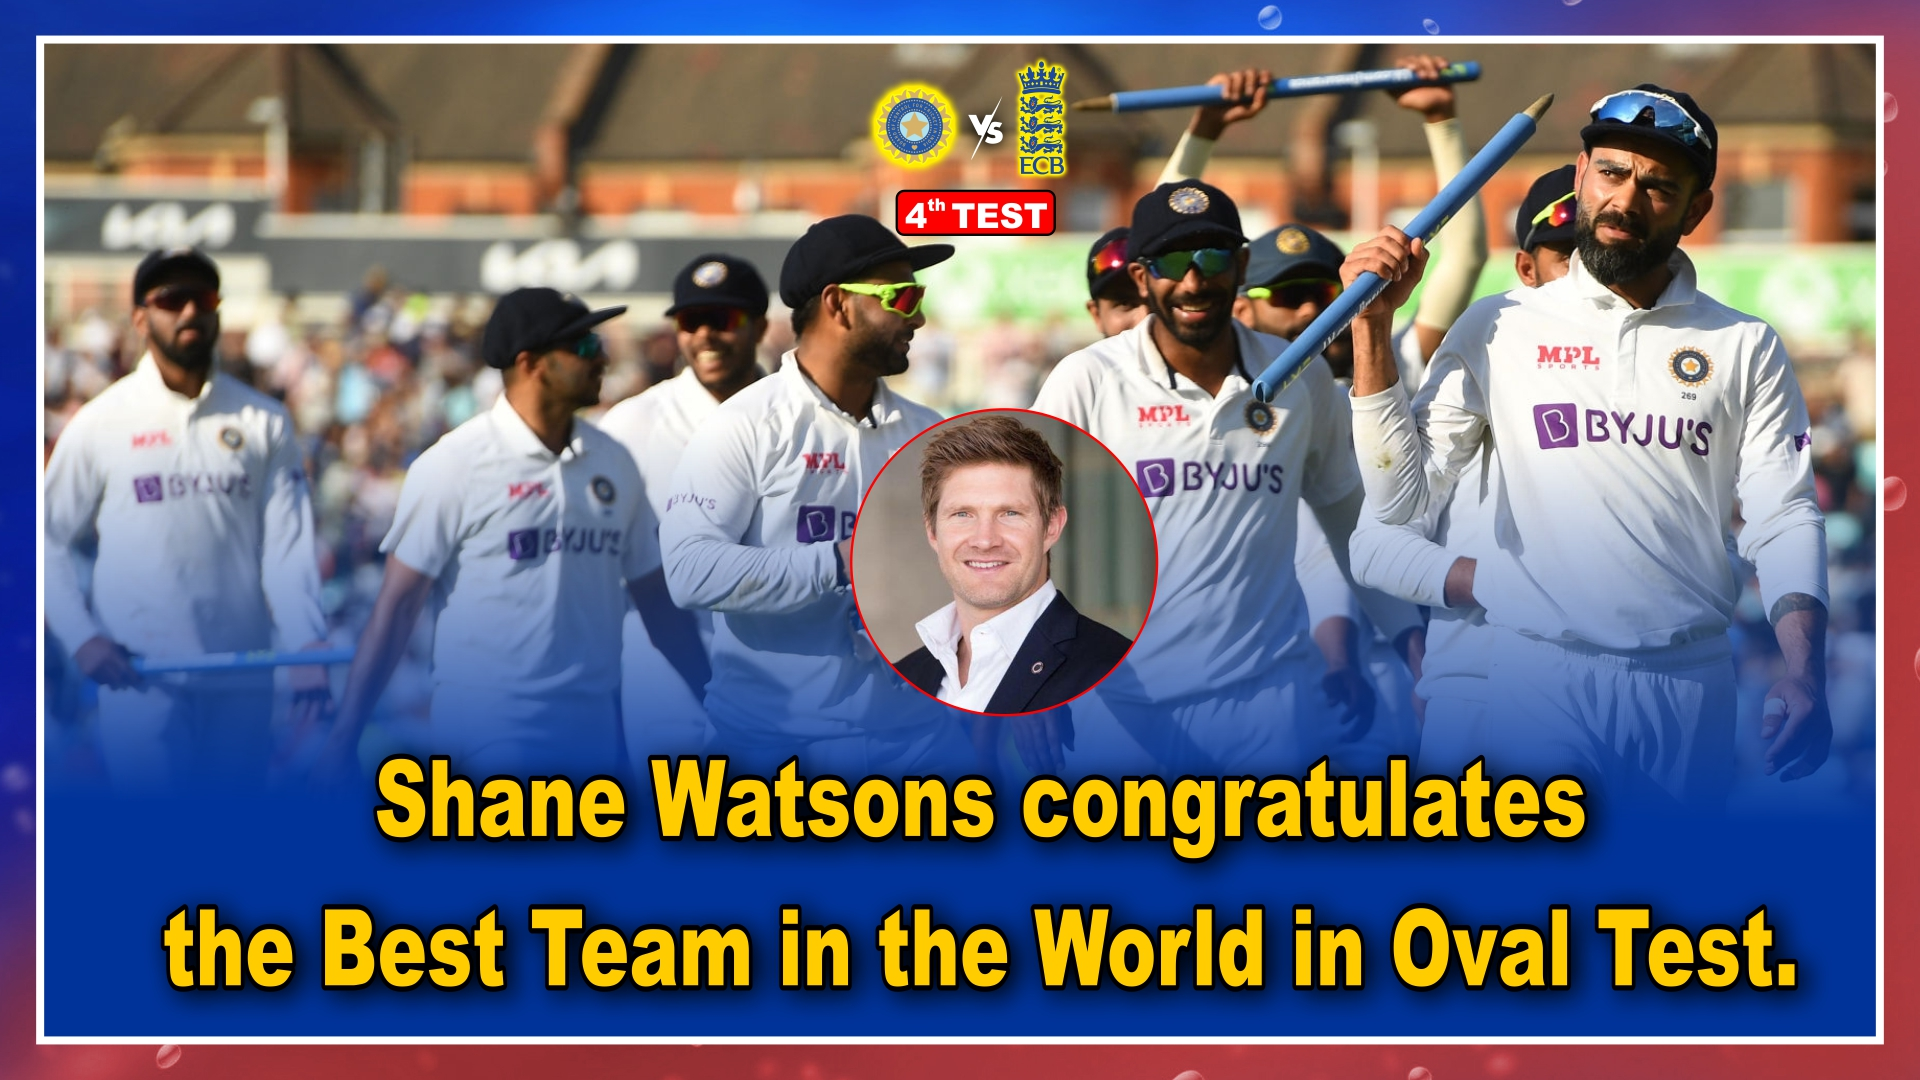 Shane Watsons congratulates the Best Team in the World in Oval Test.